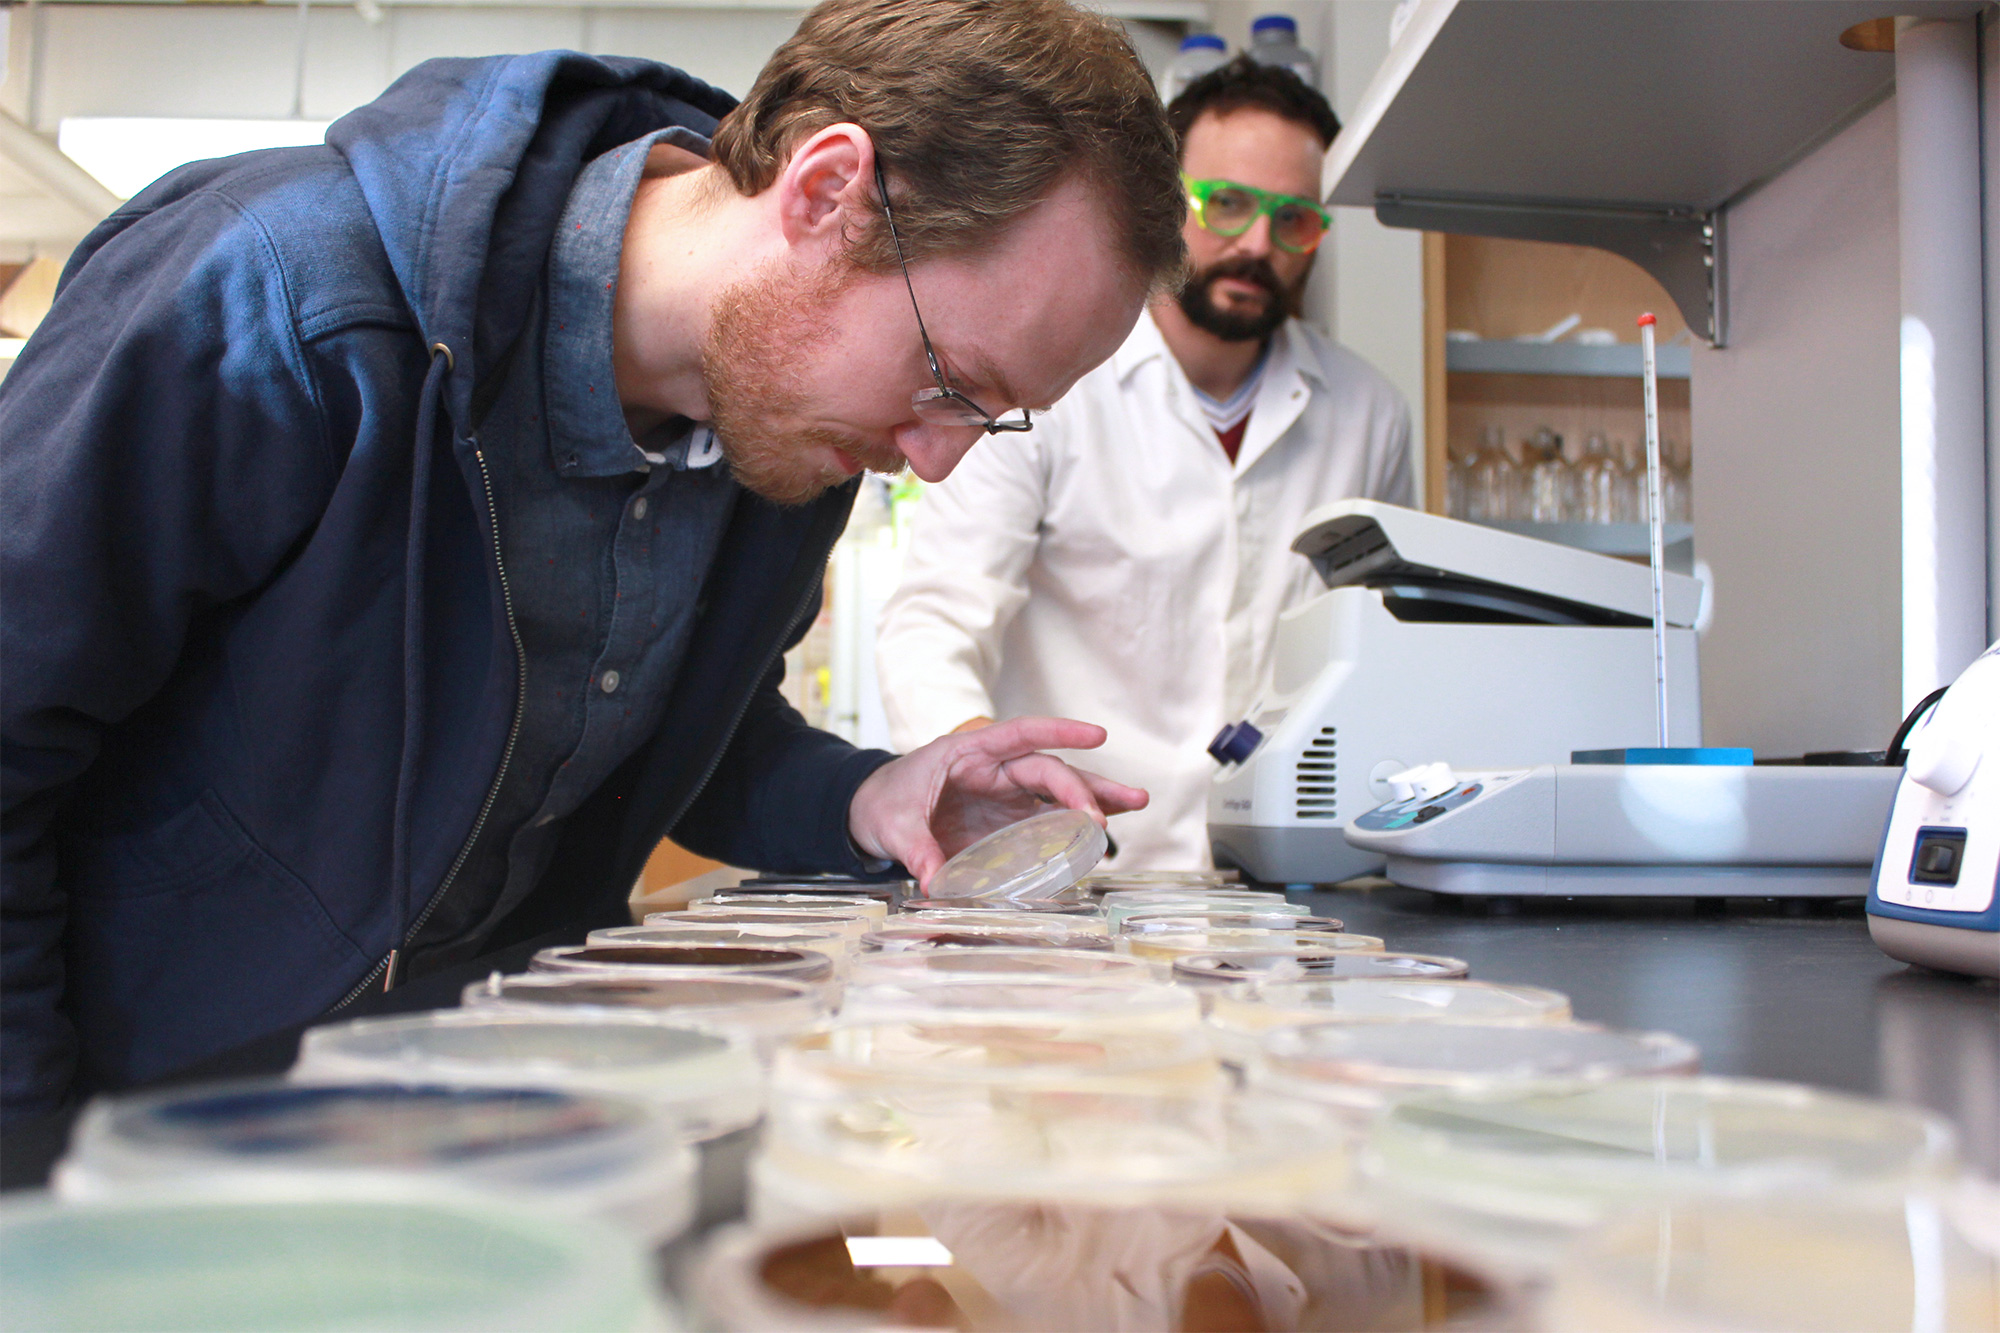 Researchers looking at petri dishes